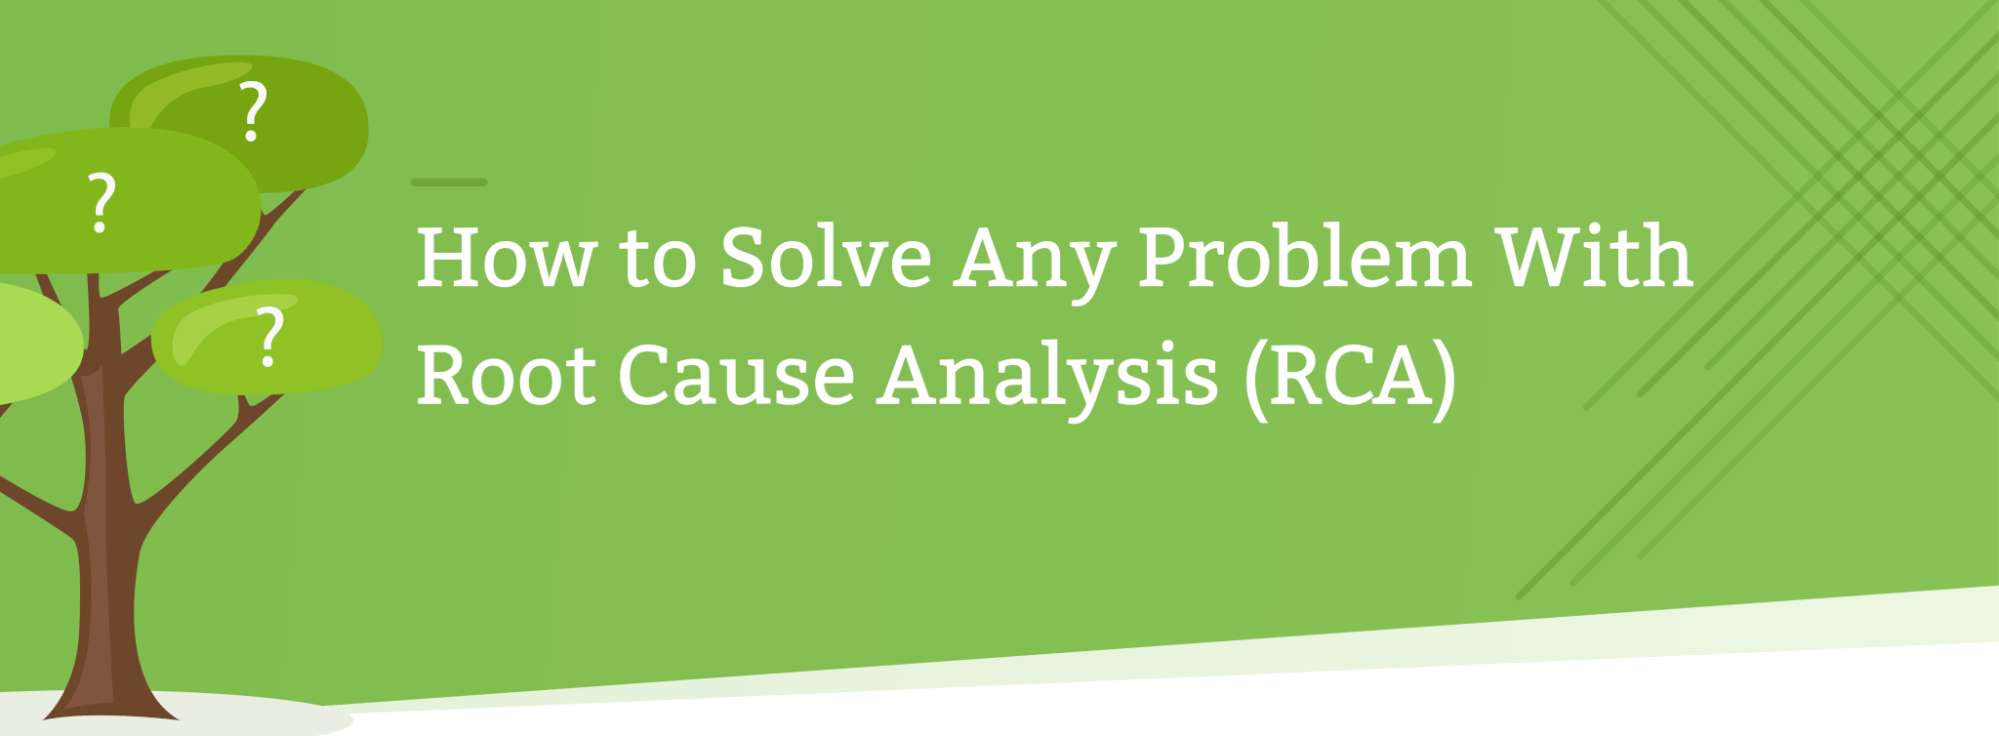 hight resolution of how to solve any problem with root cause analysis rca